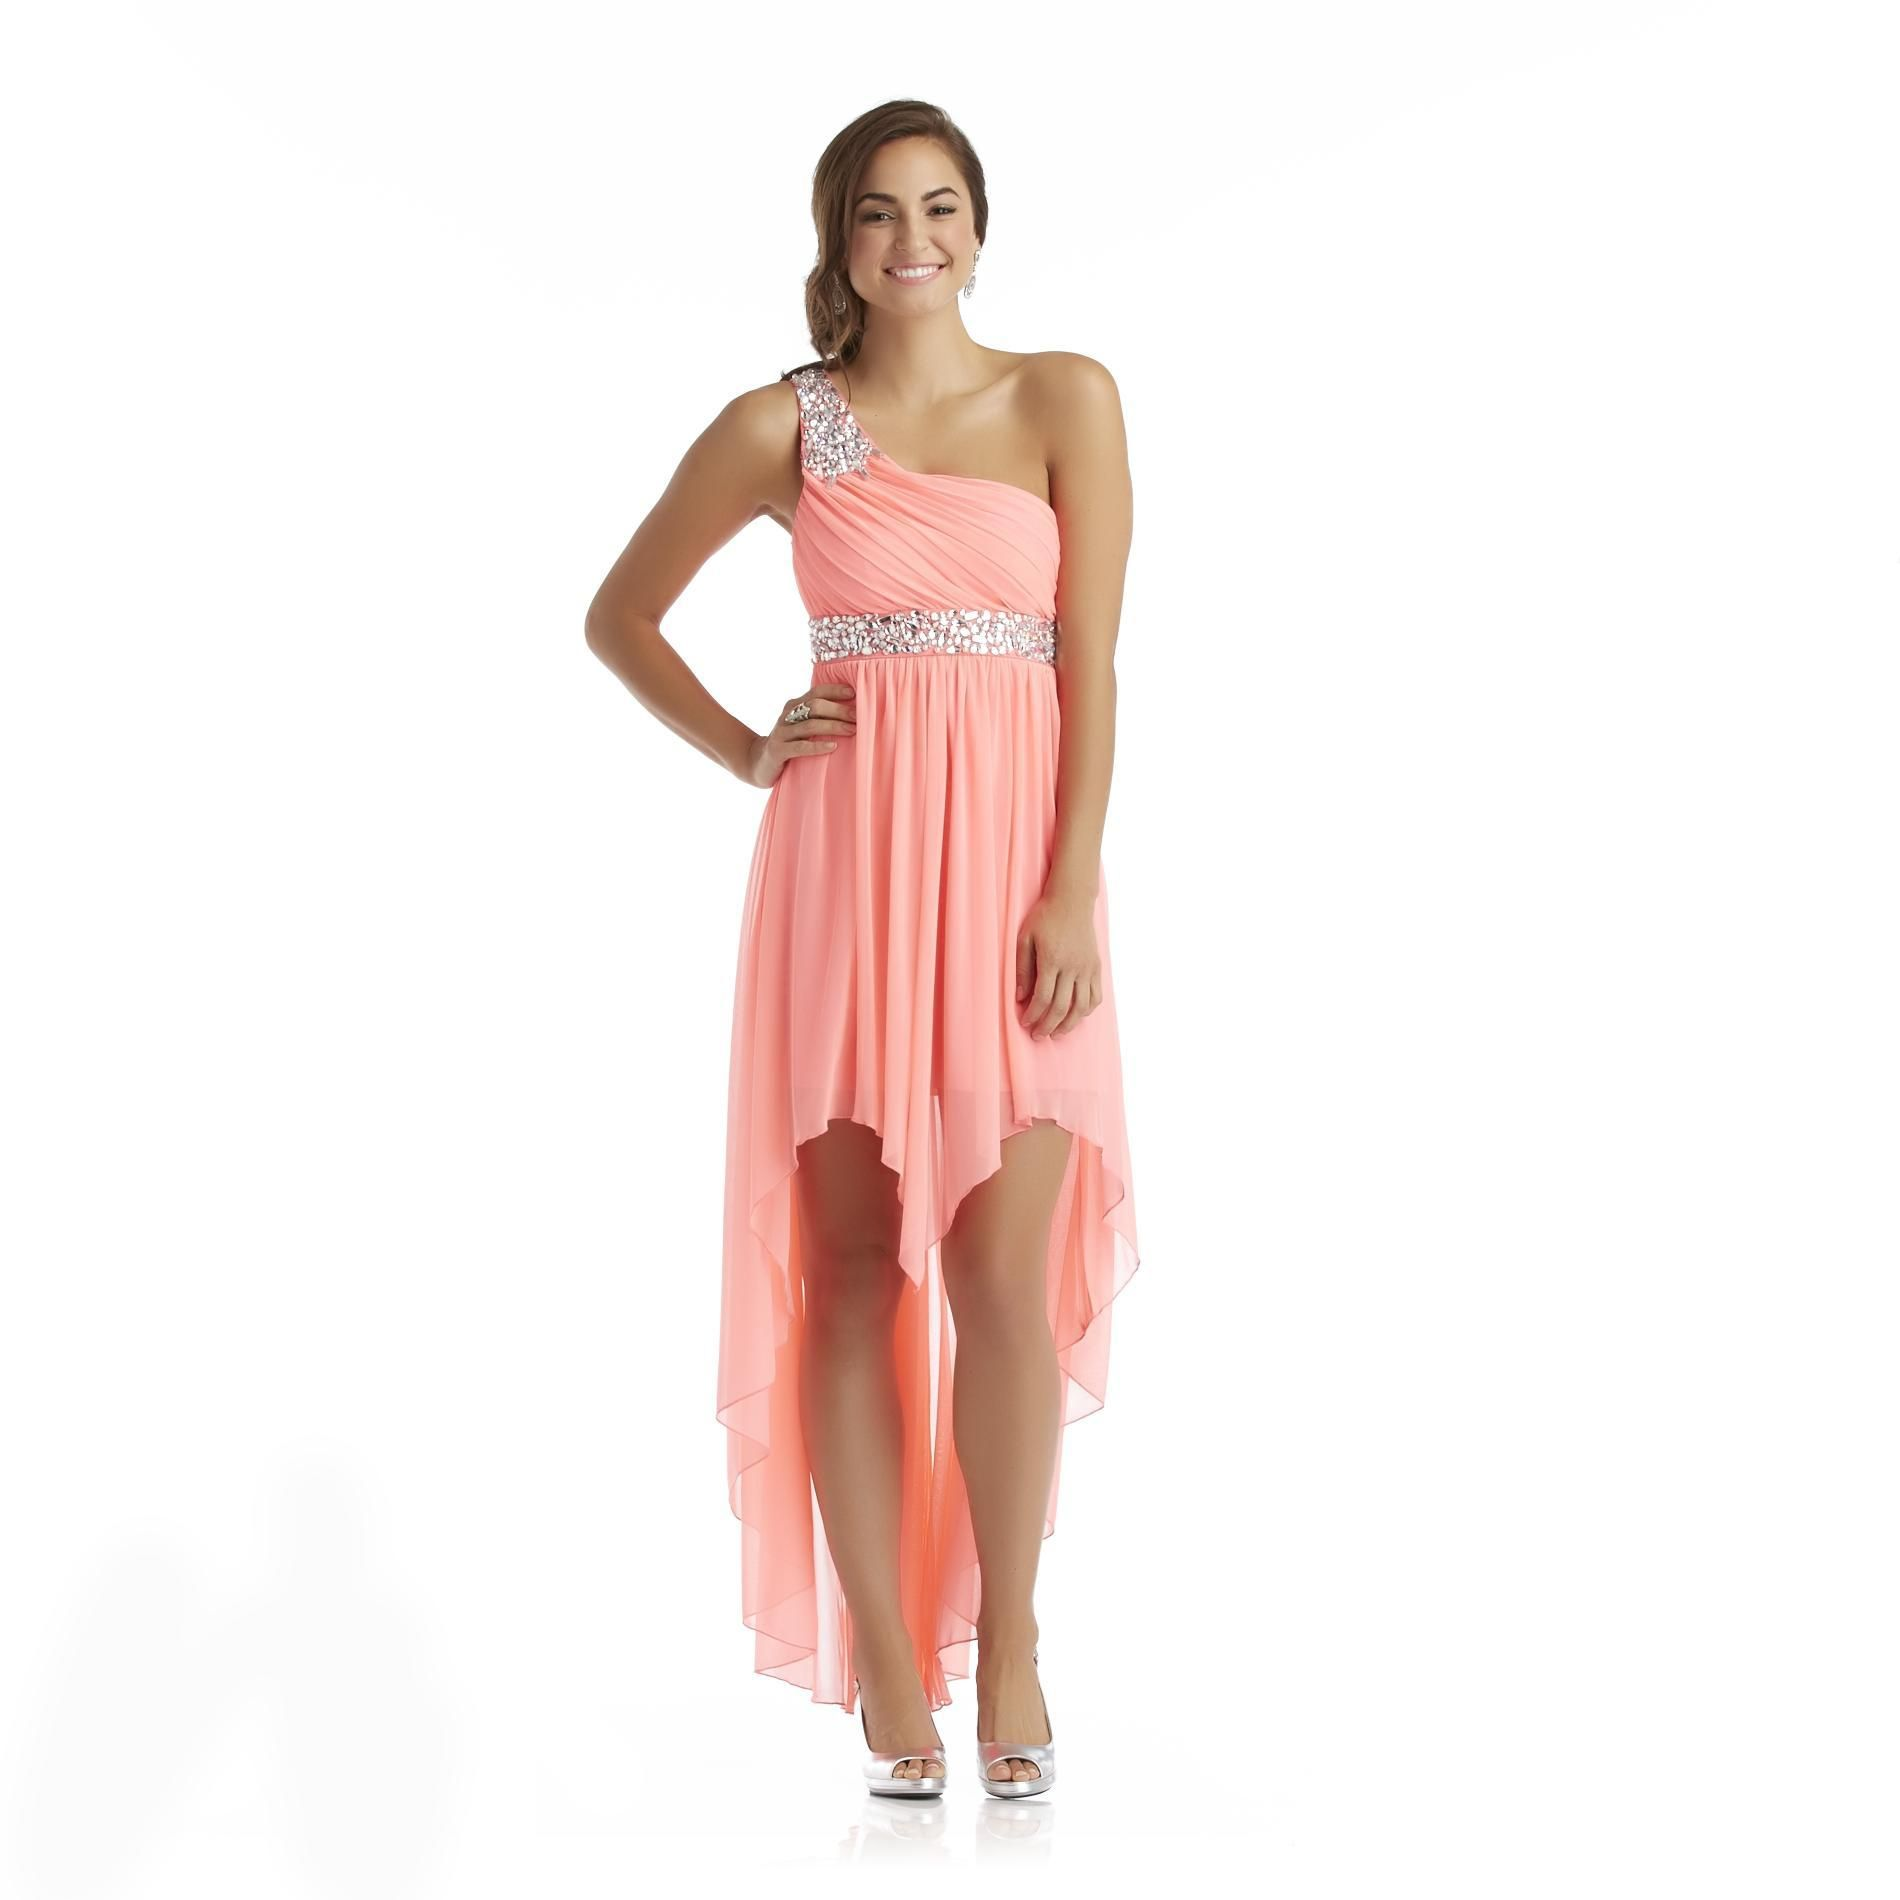 Jcpenney wedding dresses outlet womens dresses for wedding jcpenney wedding dresses outlet womens dresses for wedding guest check more at http ombrellifo Choice Image